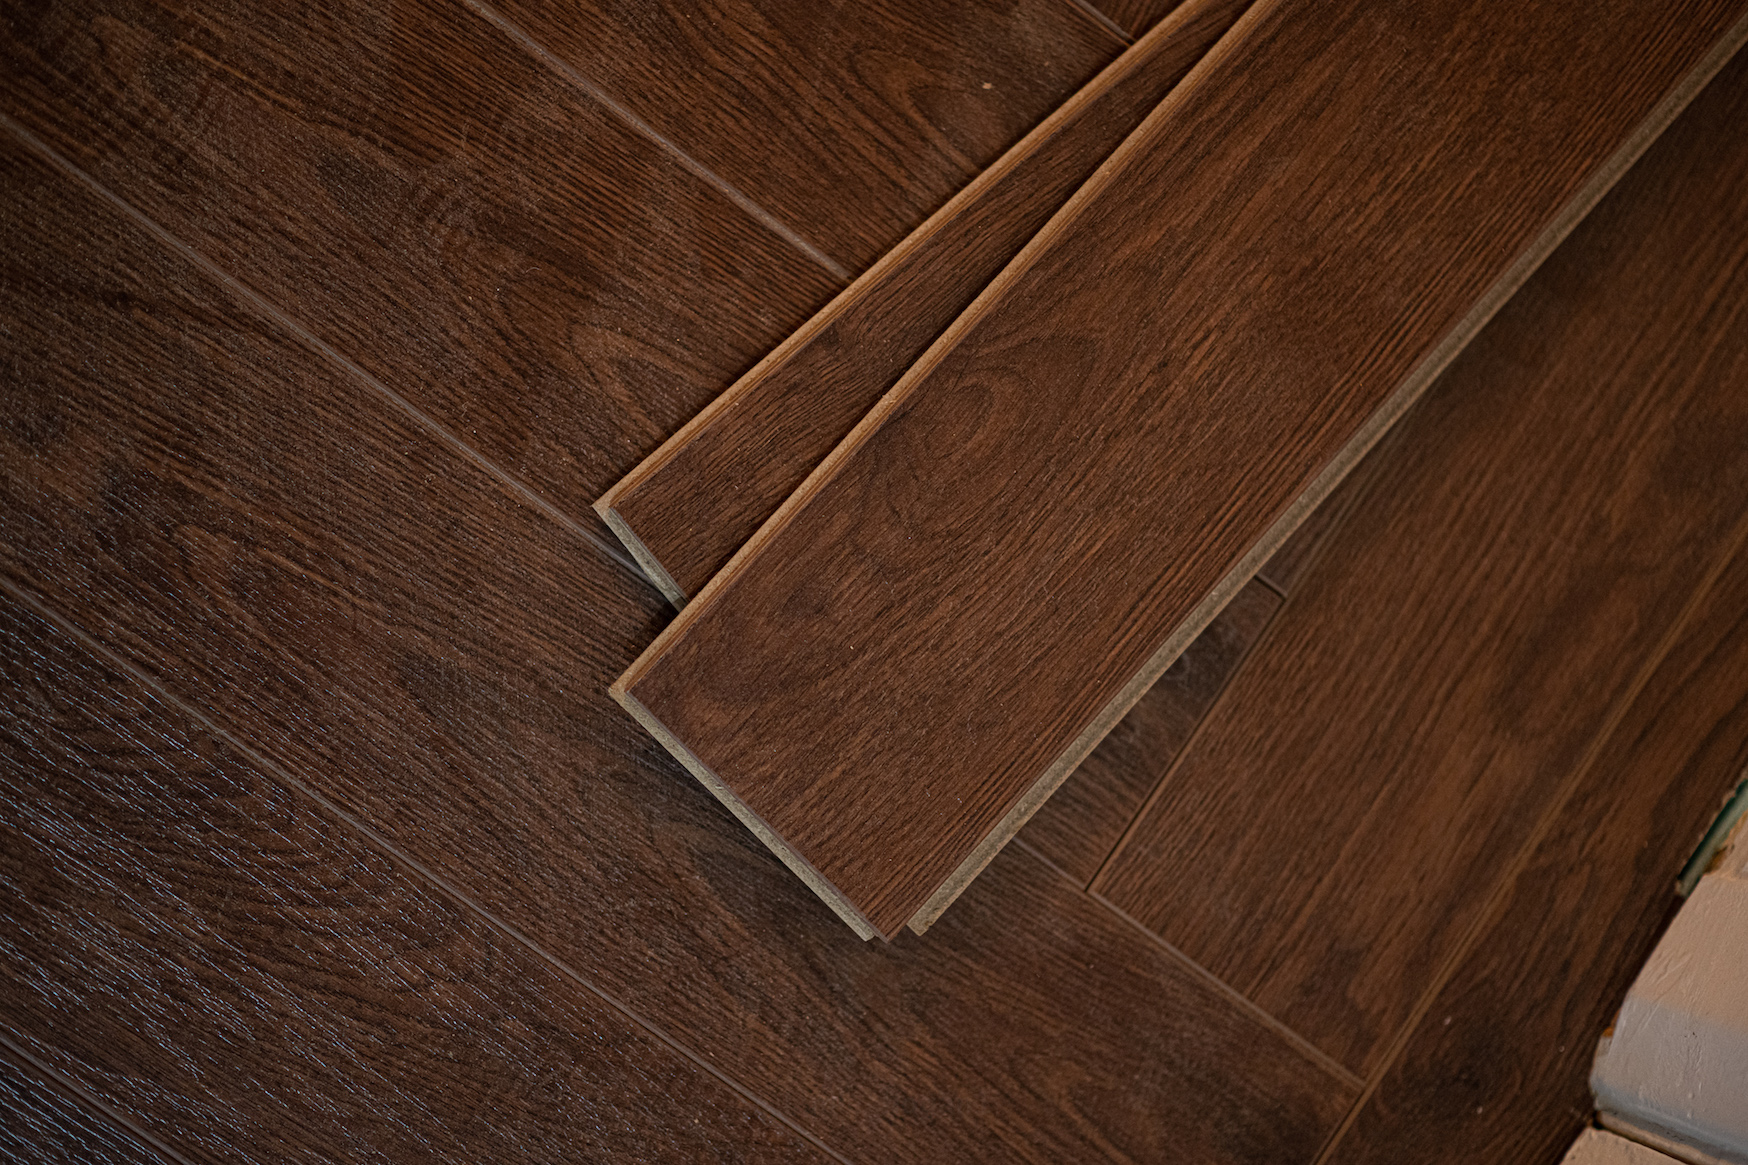 Vivant Vintage Herringbone 12mm Chocolate Walnut 4V Laminate